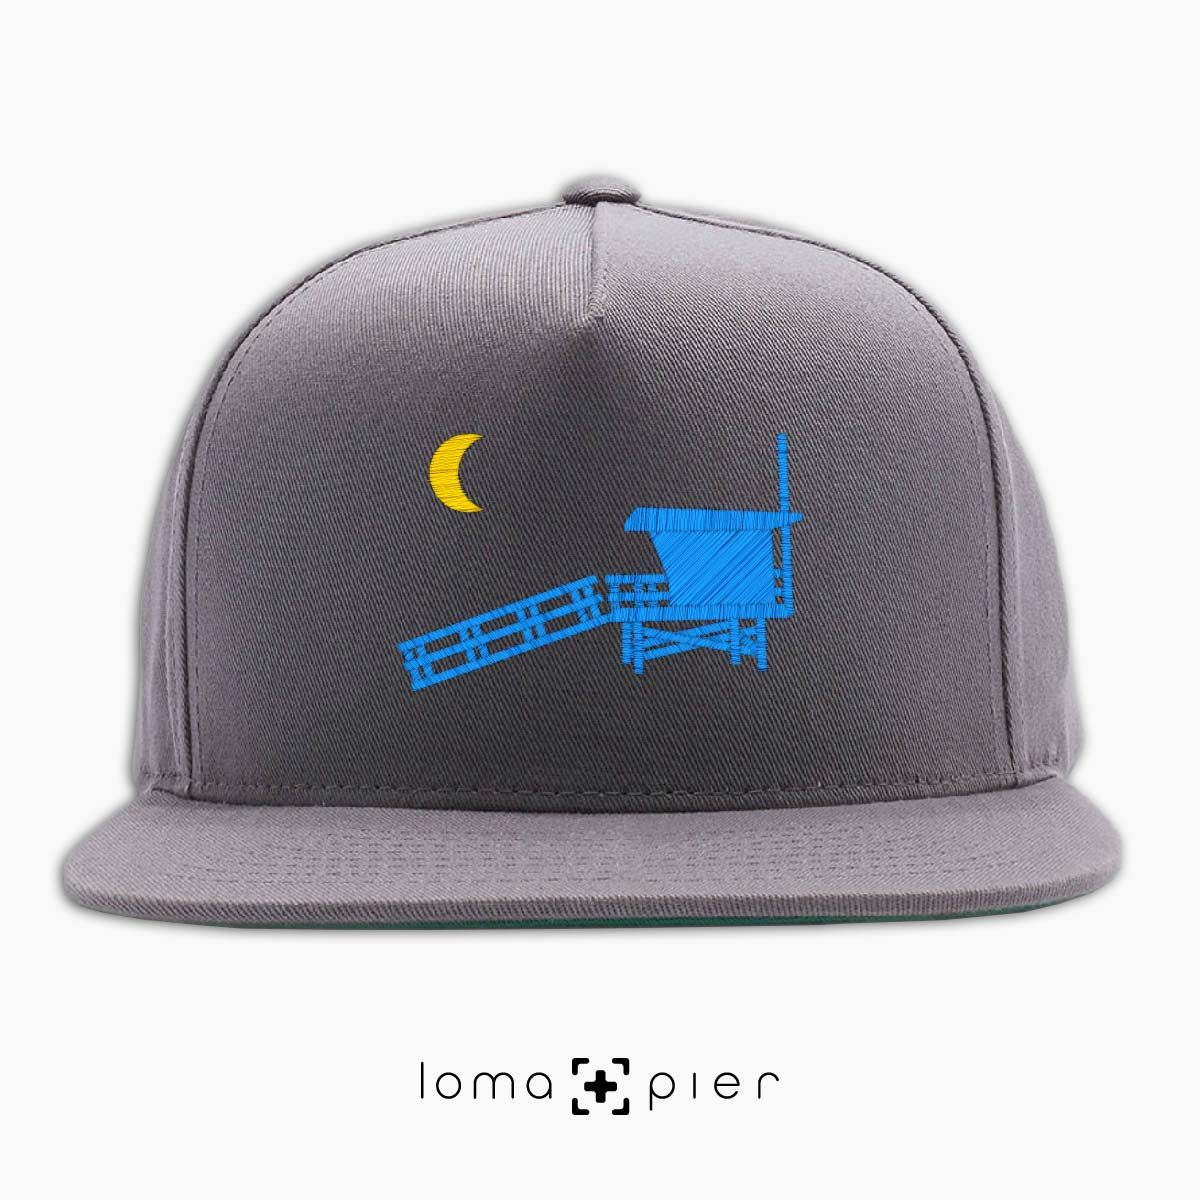 hermosa beach LIFEGUARD TOWER icon embroidered on a grey classic snapback hat by loma+pier hat store